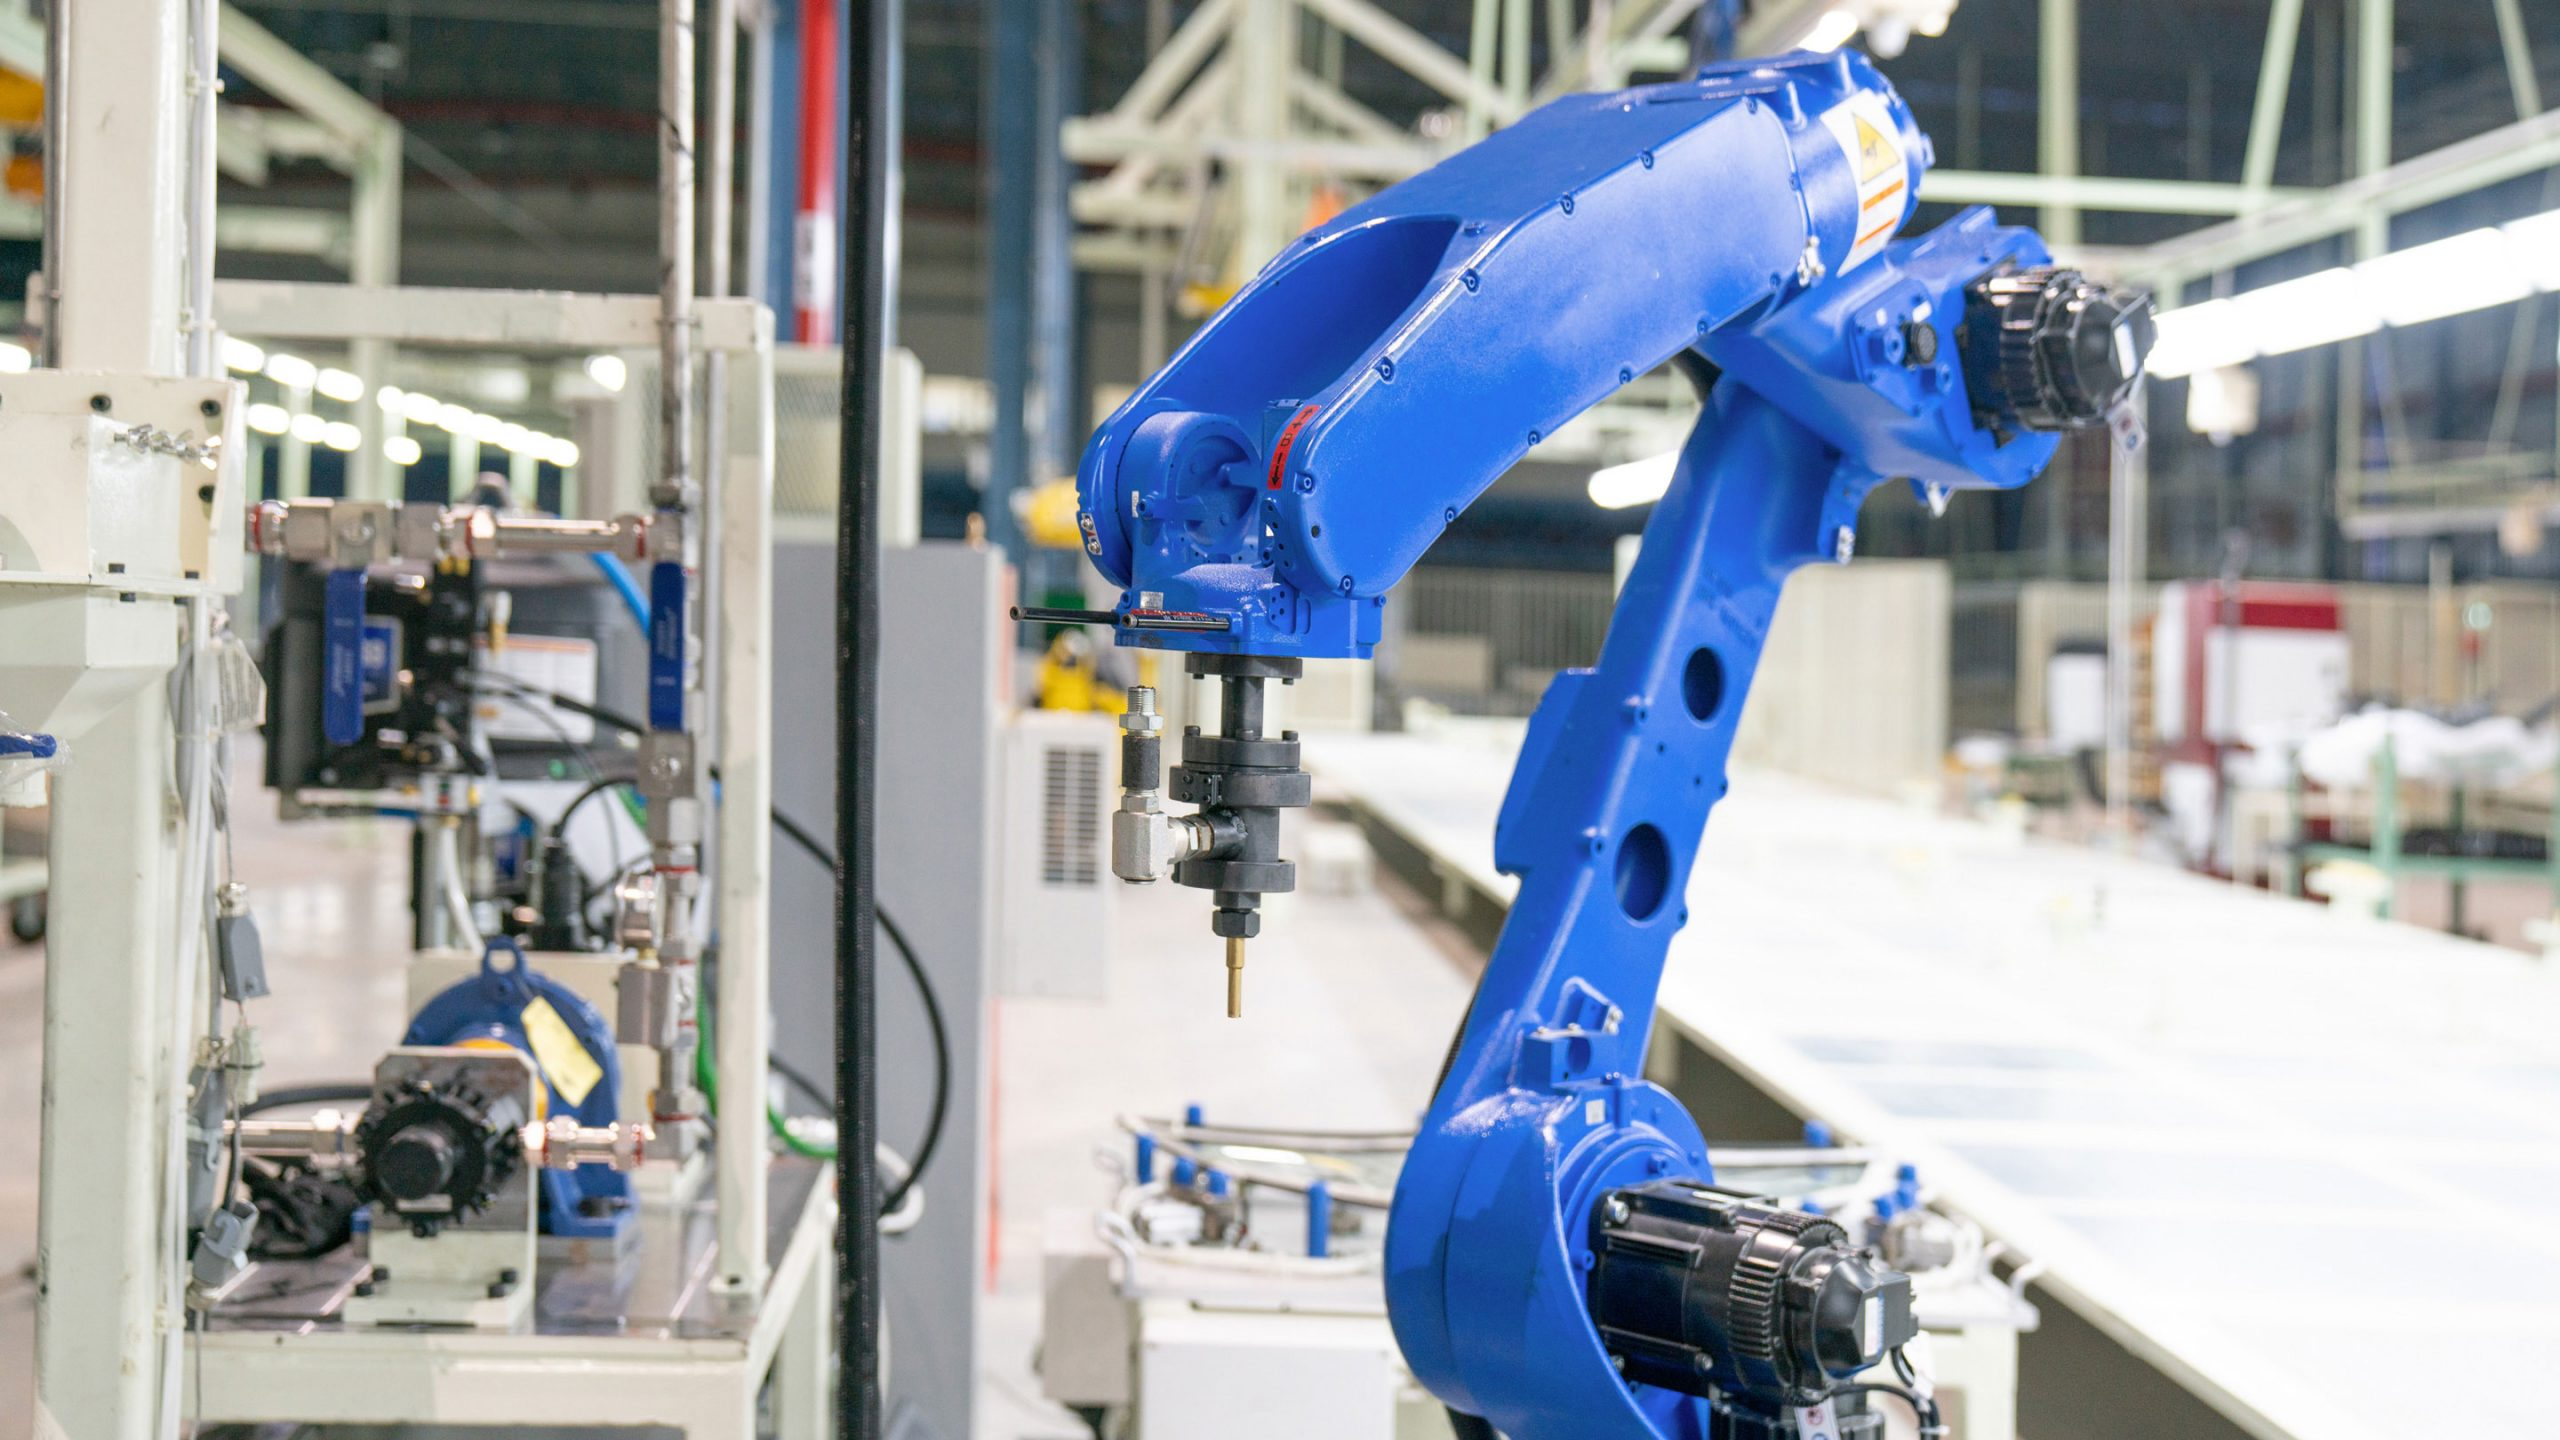 Vision Guided Robotic software are in Great demand with continuous growth in Europe